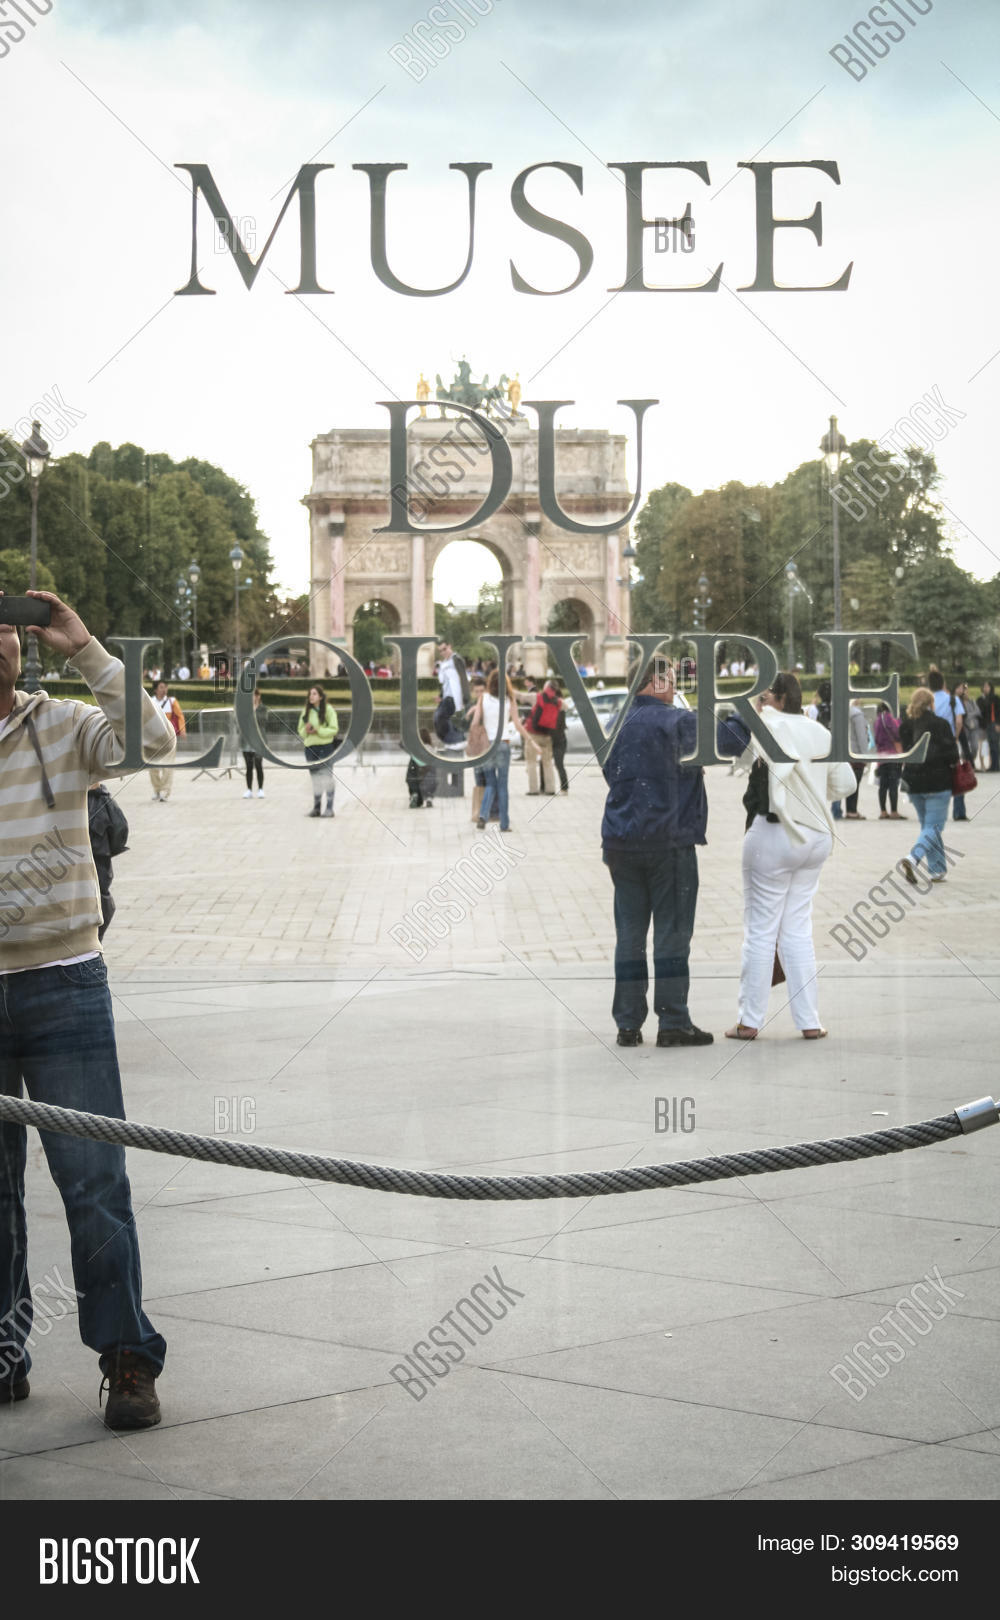 stock photo paris, france july 23, 2011: tourist taking pictures behind the logo of louvre museum (musee du lo